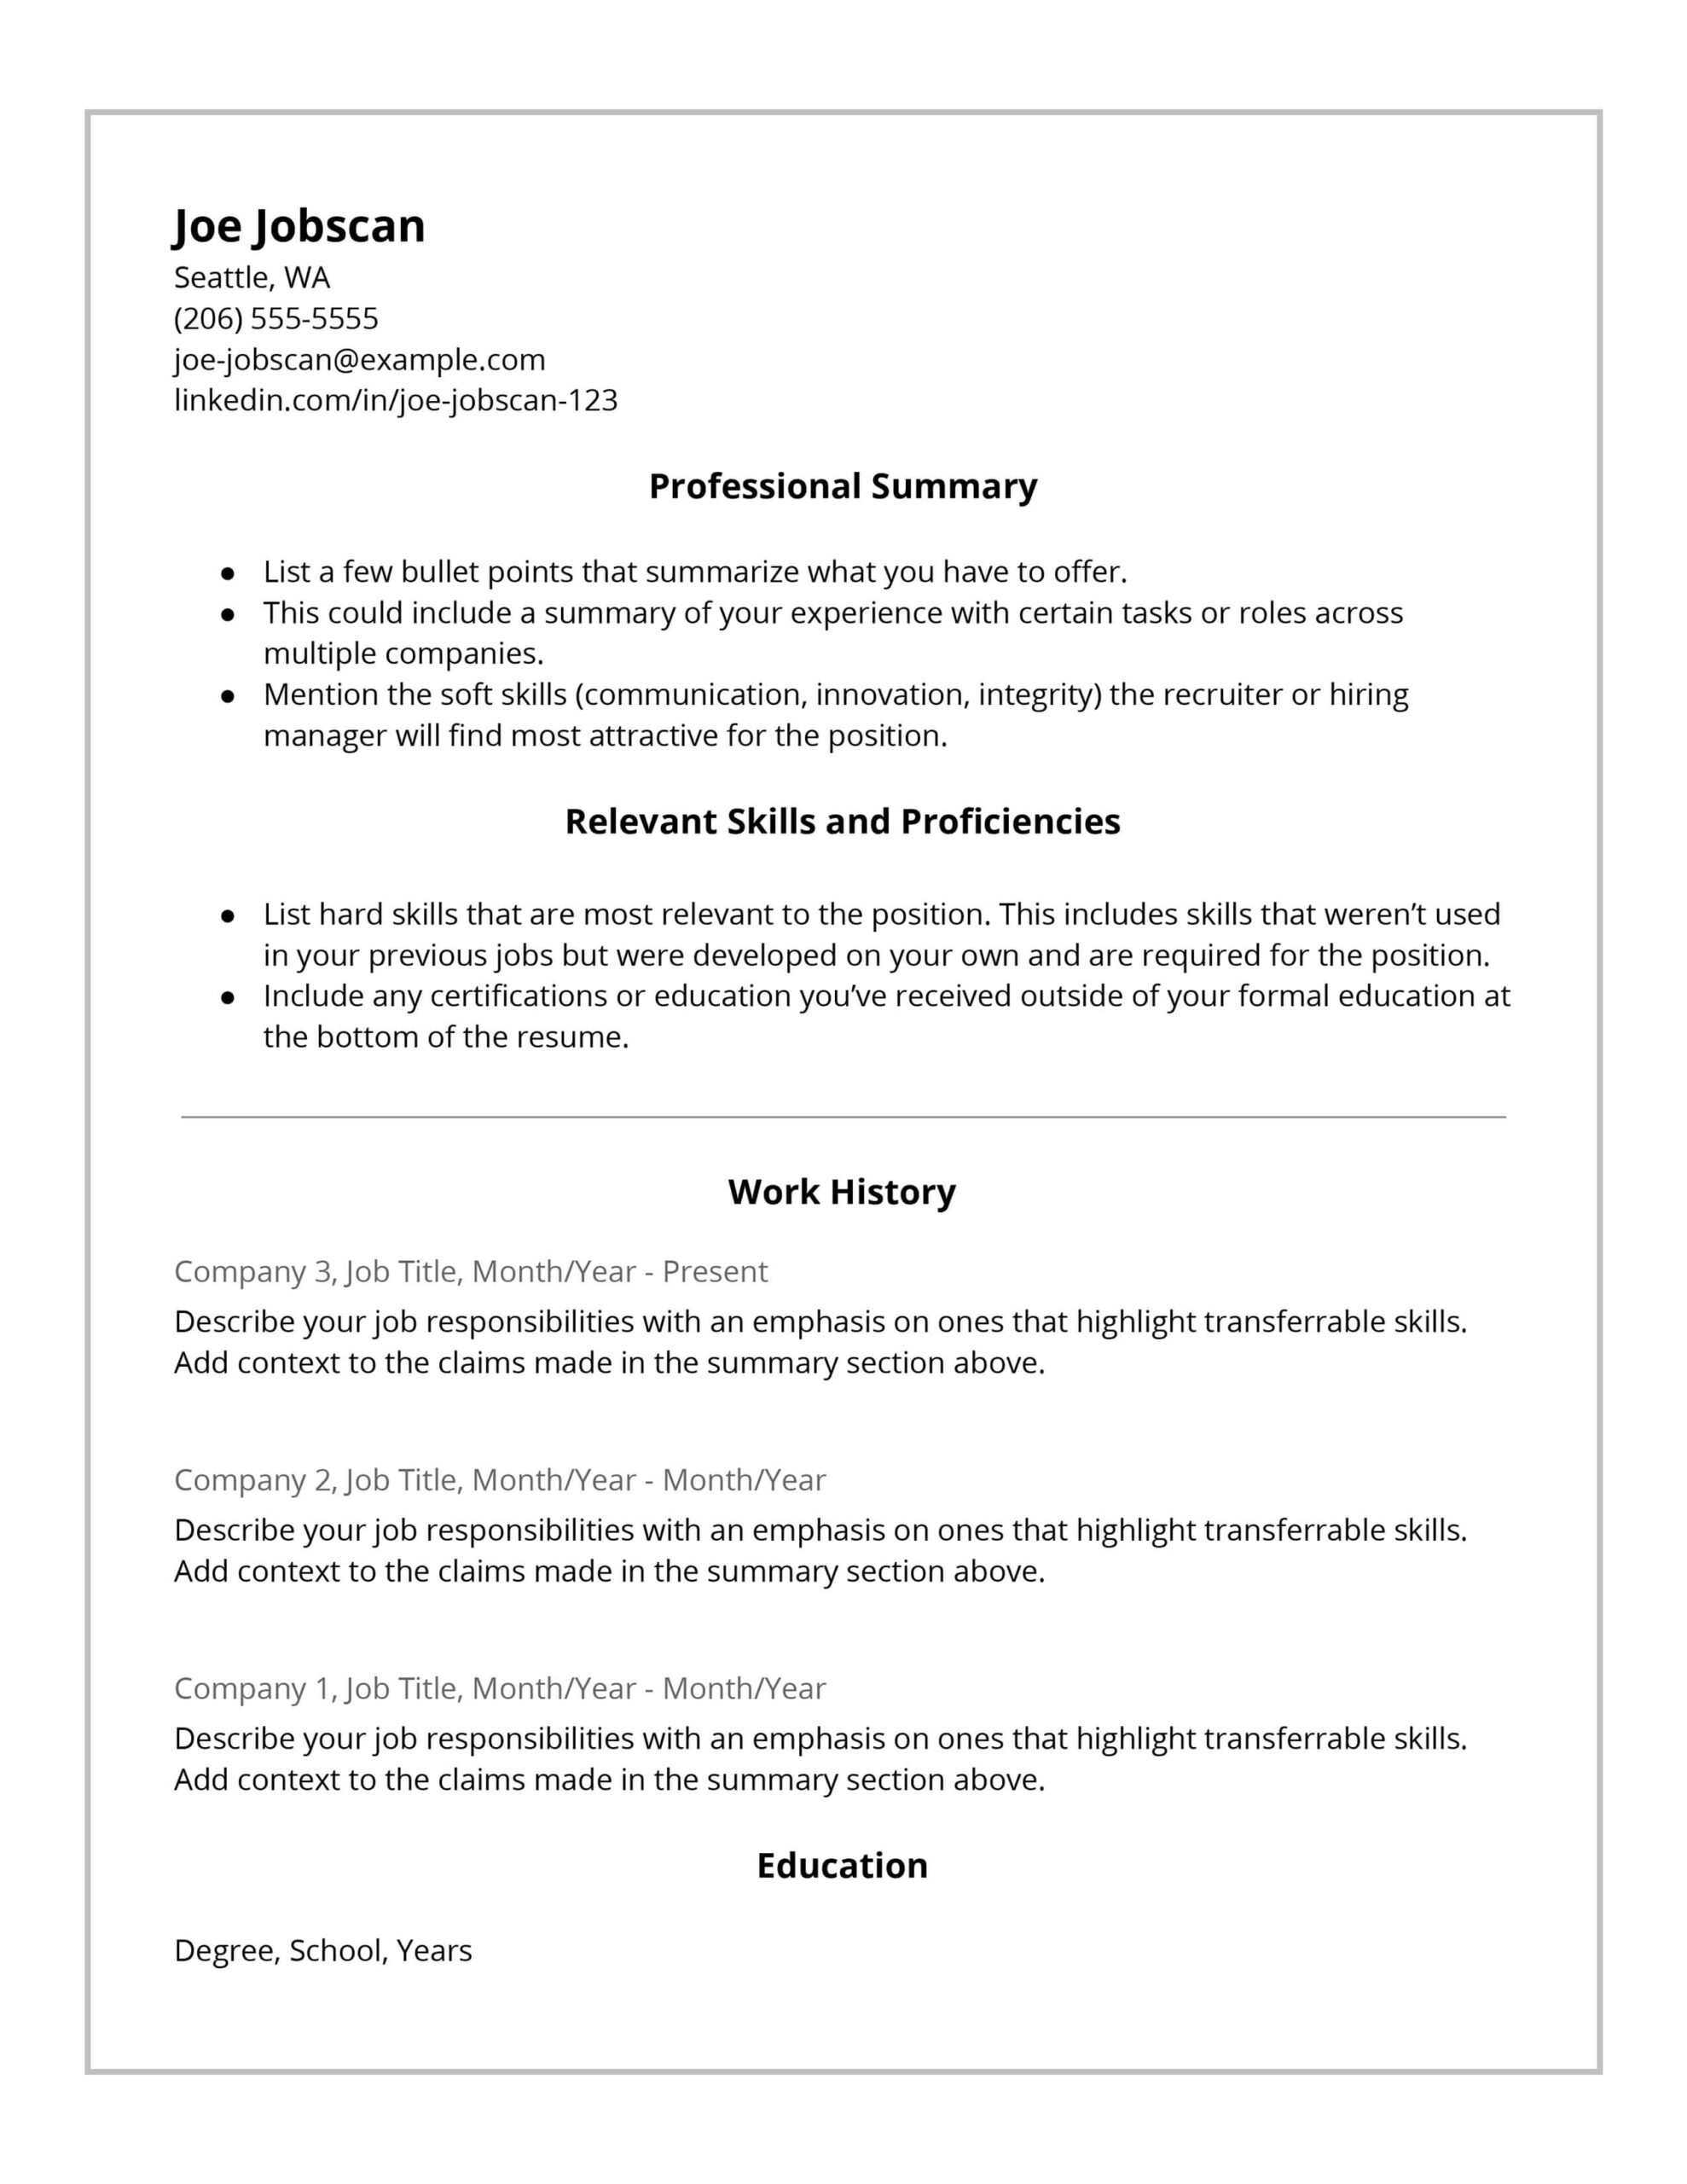 recruiters hate the functional resume format here with work history hybrid template en Resume Resume With Long Work History